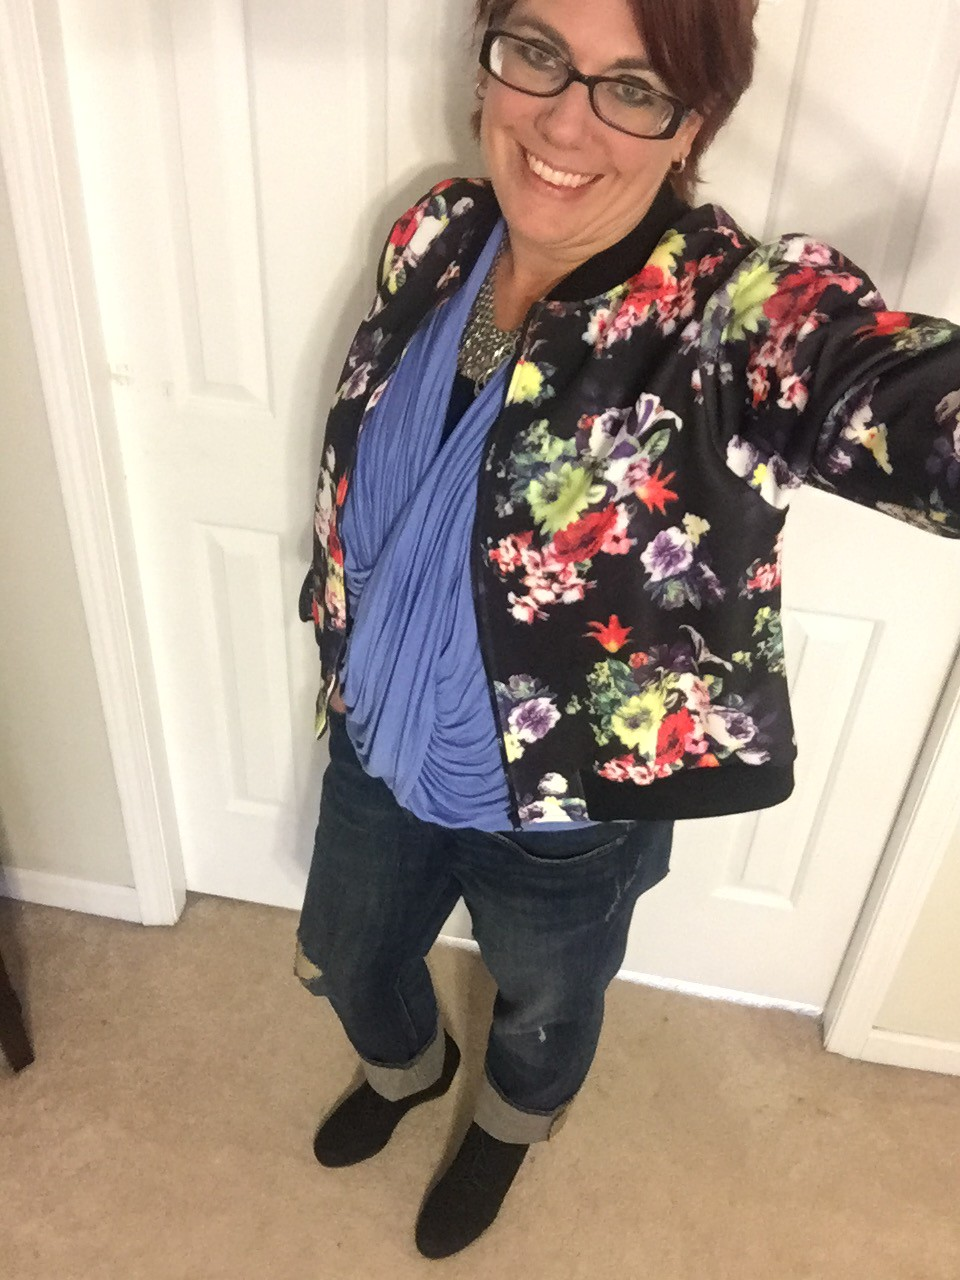 Floral Bomber to Brighten a Dreary Day